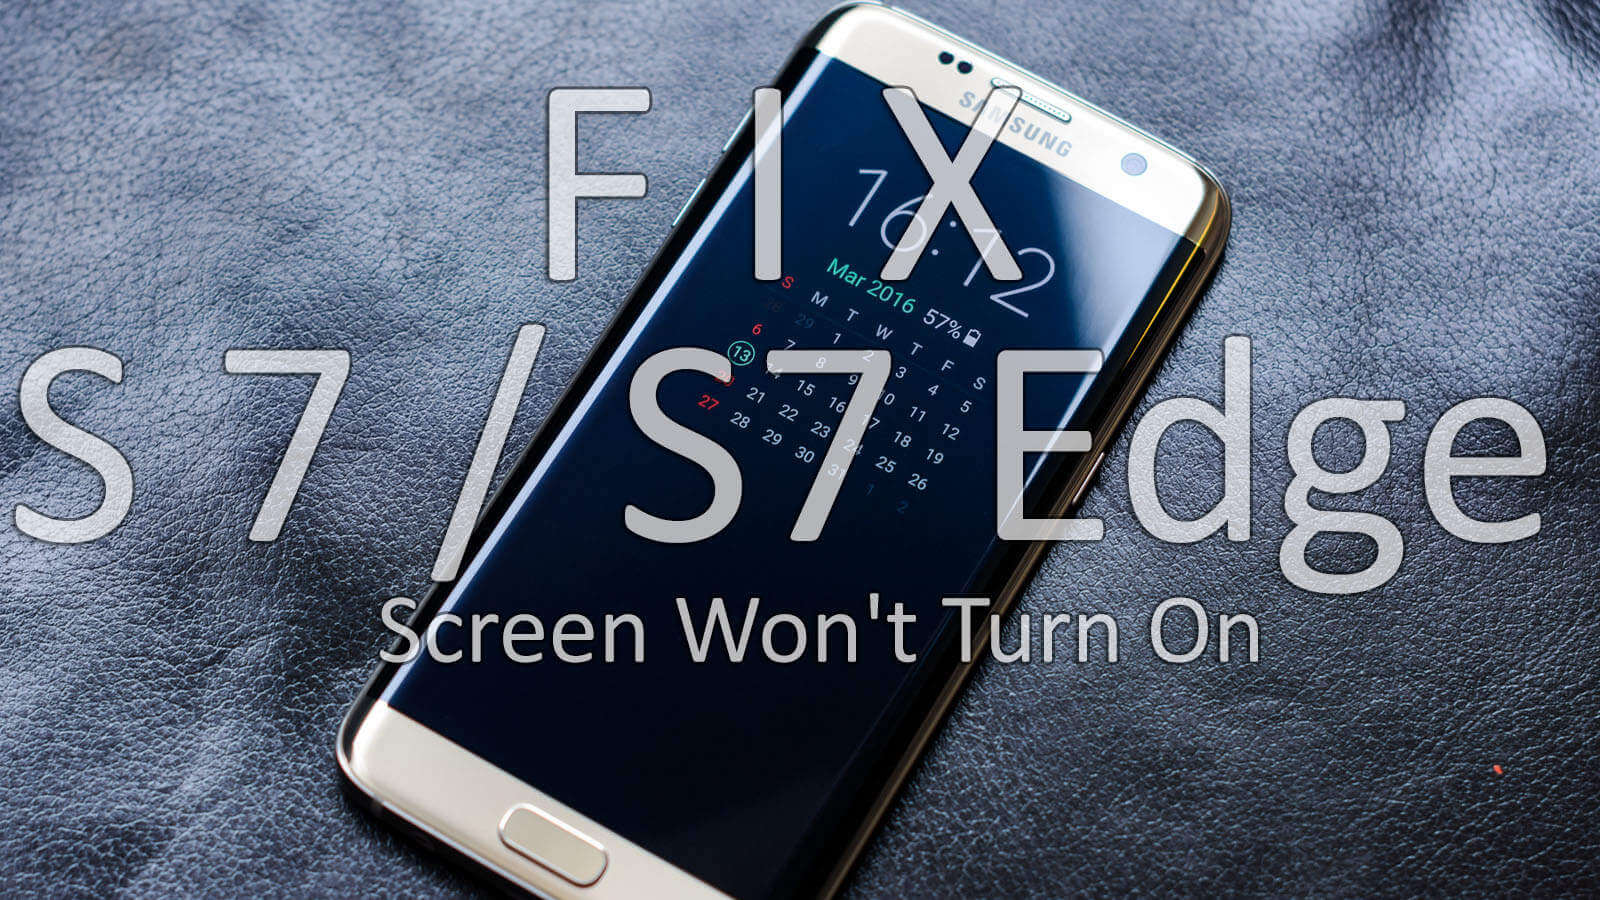 How To Fix Samsung Galaxy S7 / S7 Edge Screen Won't Turn On